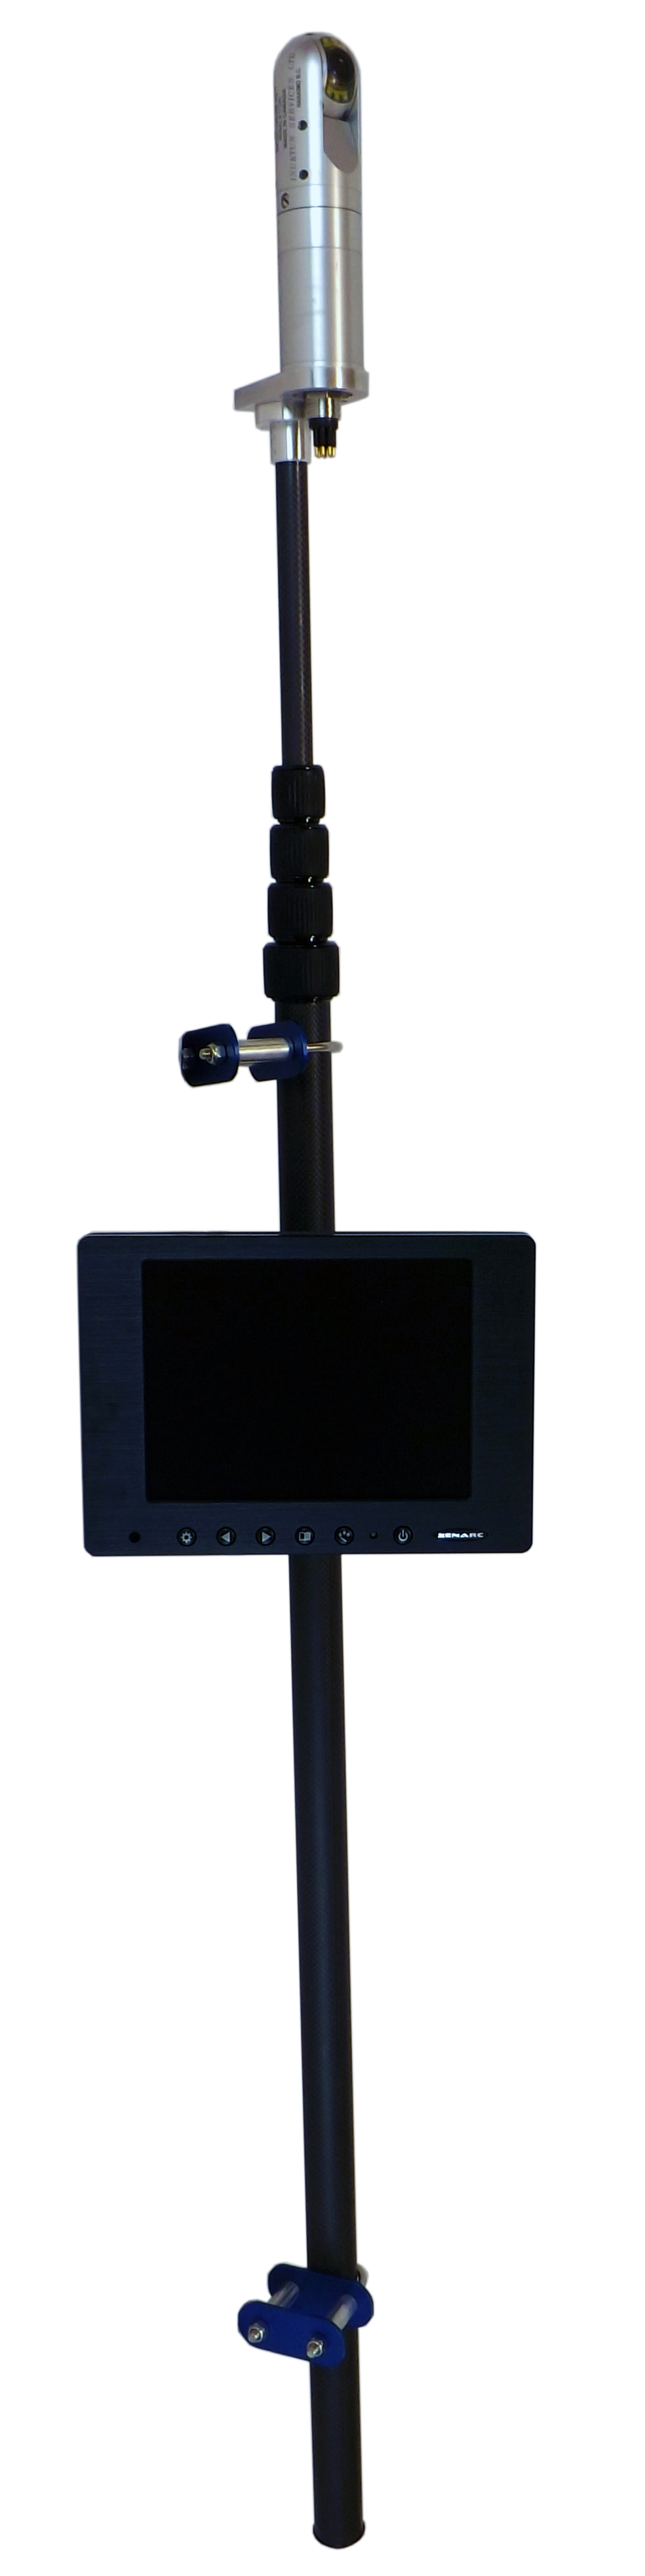 Spectrum 45™ Camera with Deployment Pole and Optional Monitor